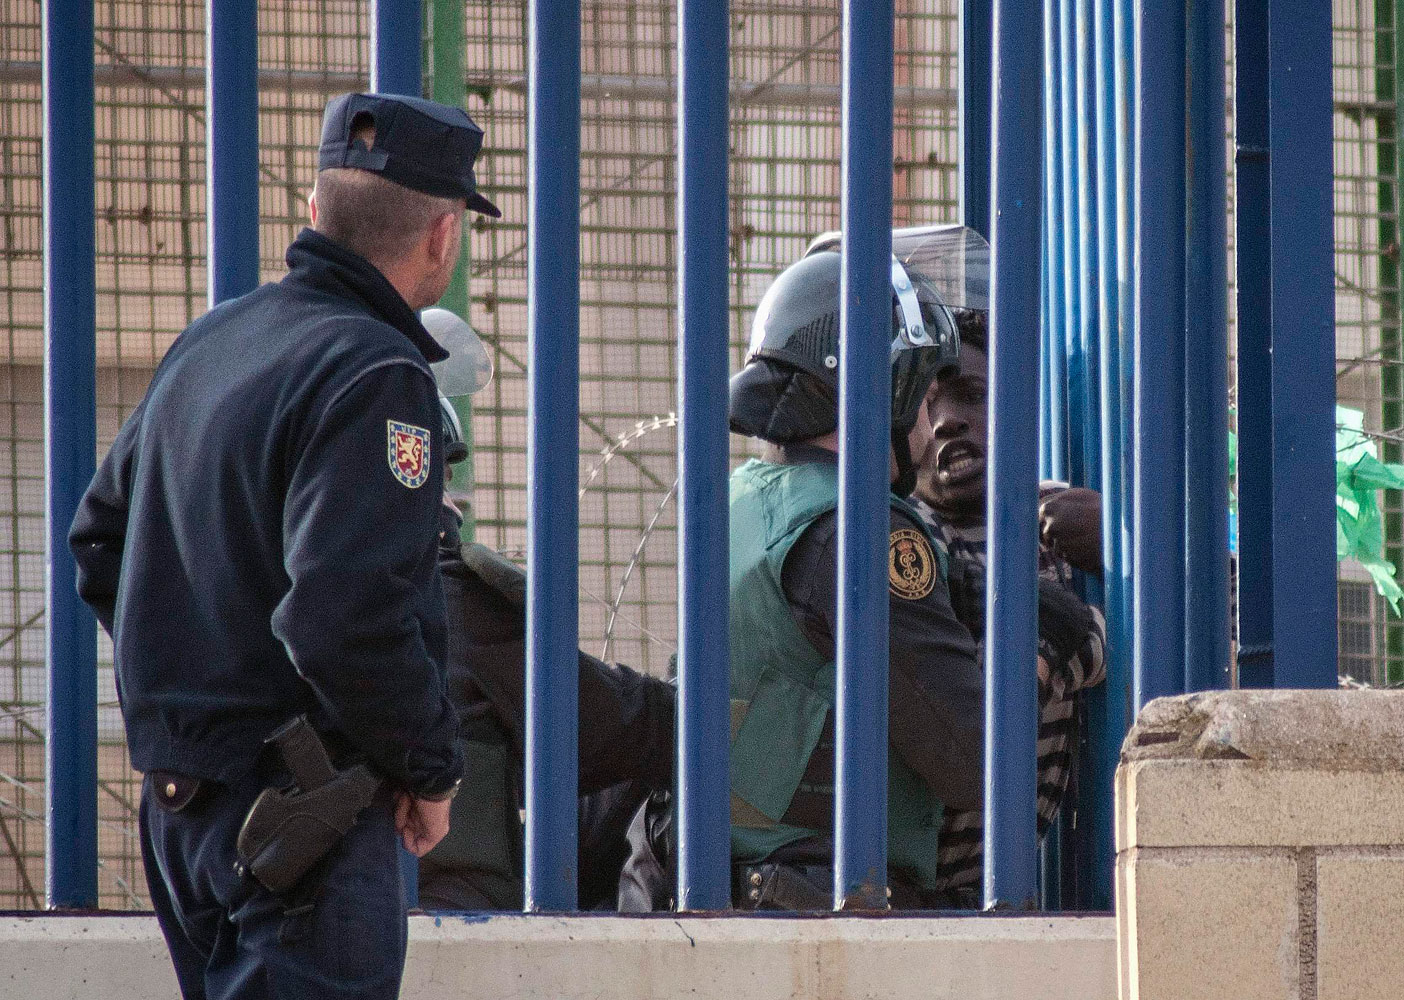 An African migrant is detained by a Spanish civil guard at the border fence near Beni Enza between Morocco and Spain's north African enclave Melilla while attempting to cross into Spanish territory, March 28, 2014.